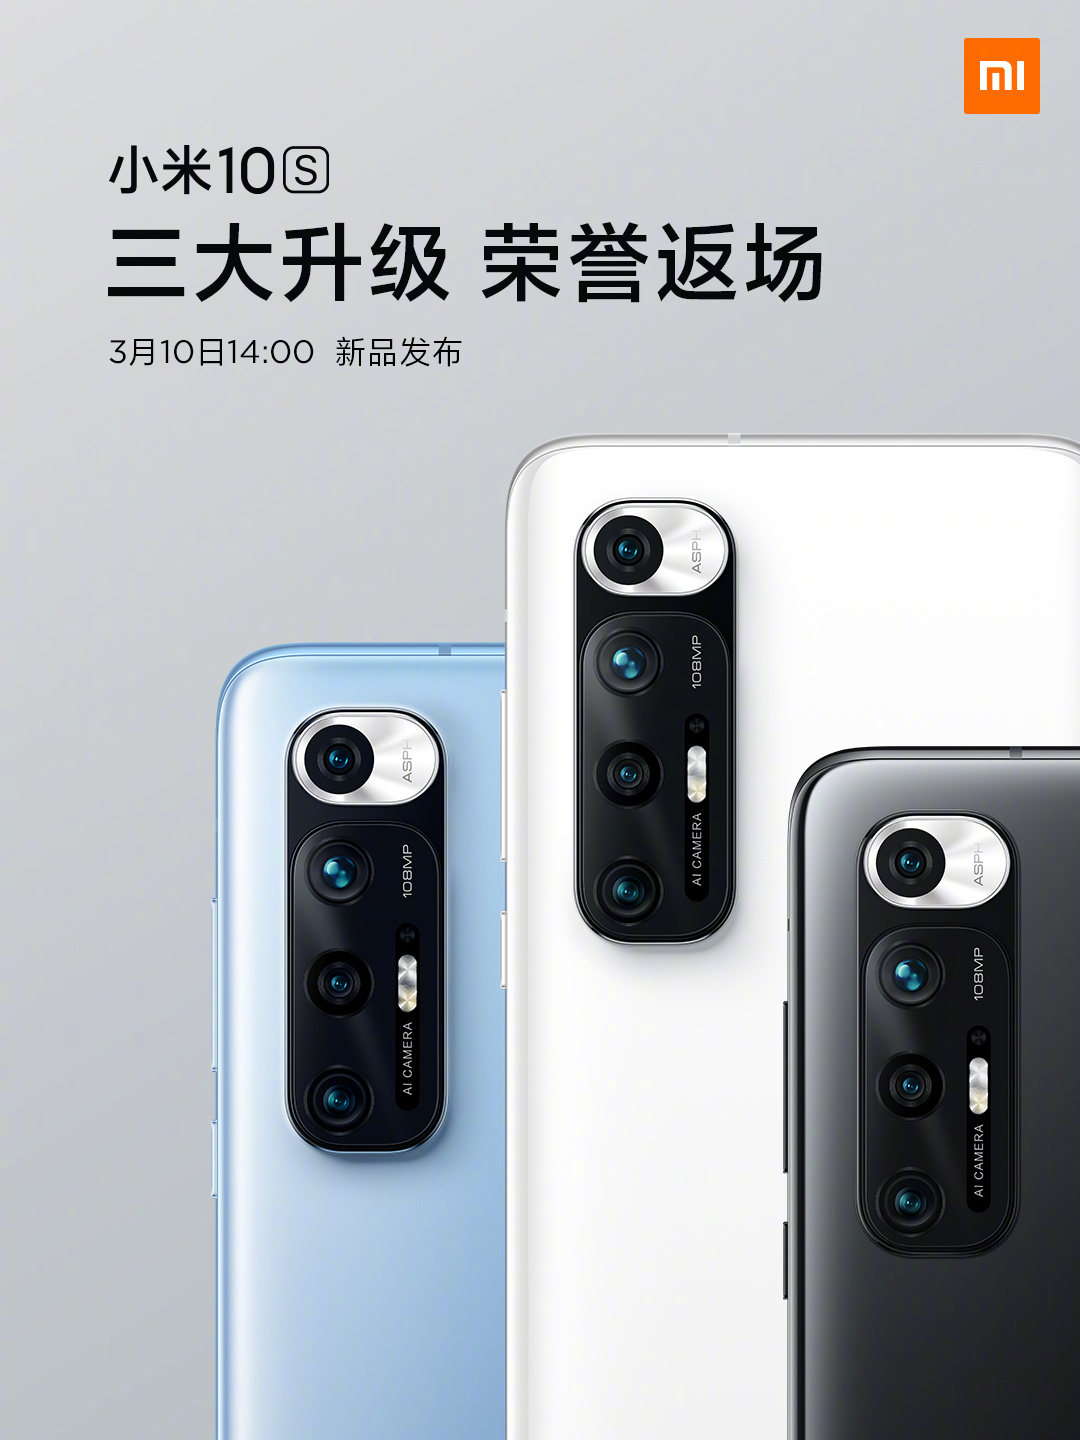 Mi 10s Release Date and Official Rendering